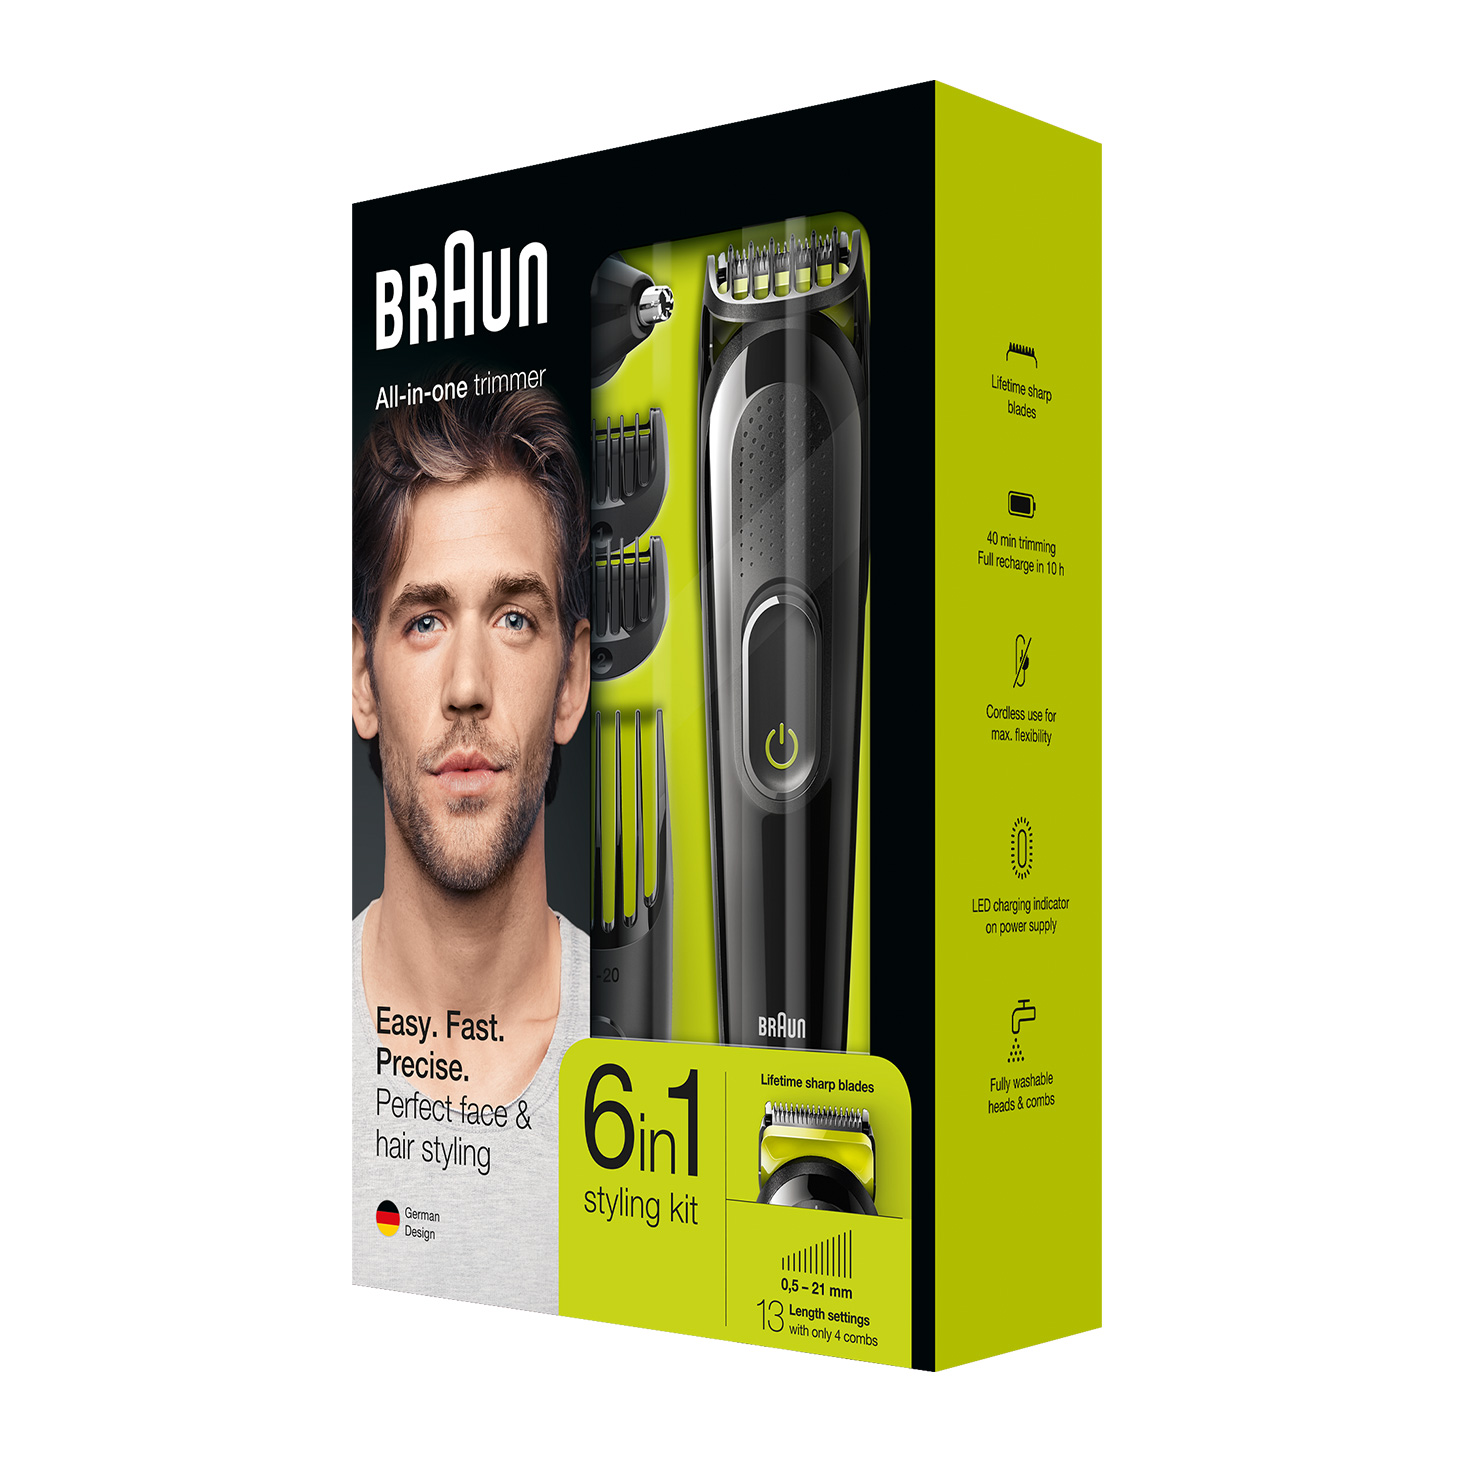 Braun All-in-one trimmer MGK3021 - Packaging